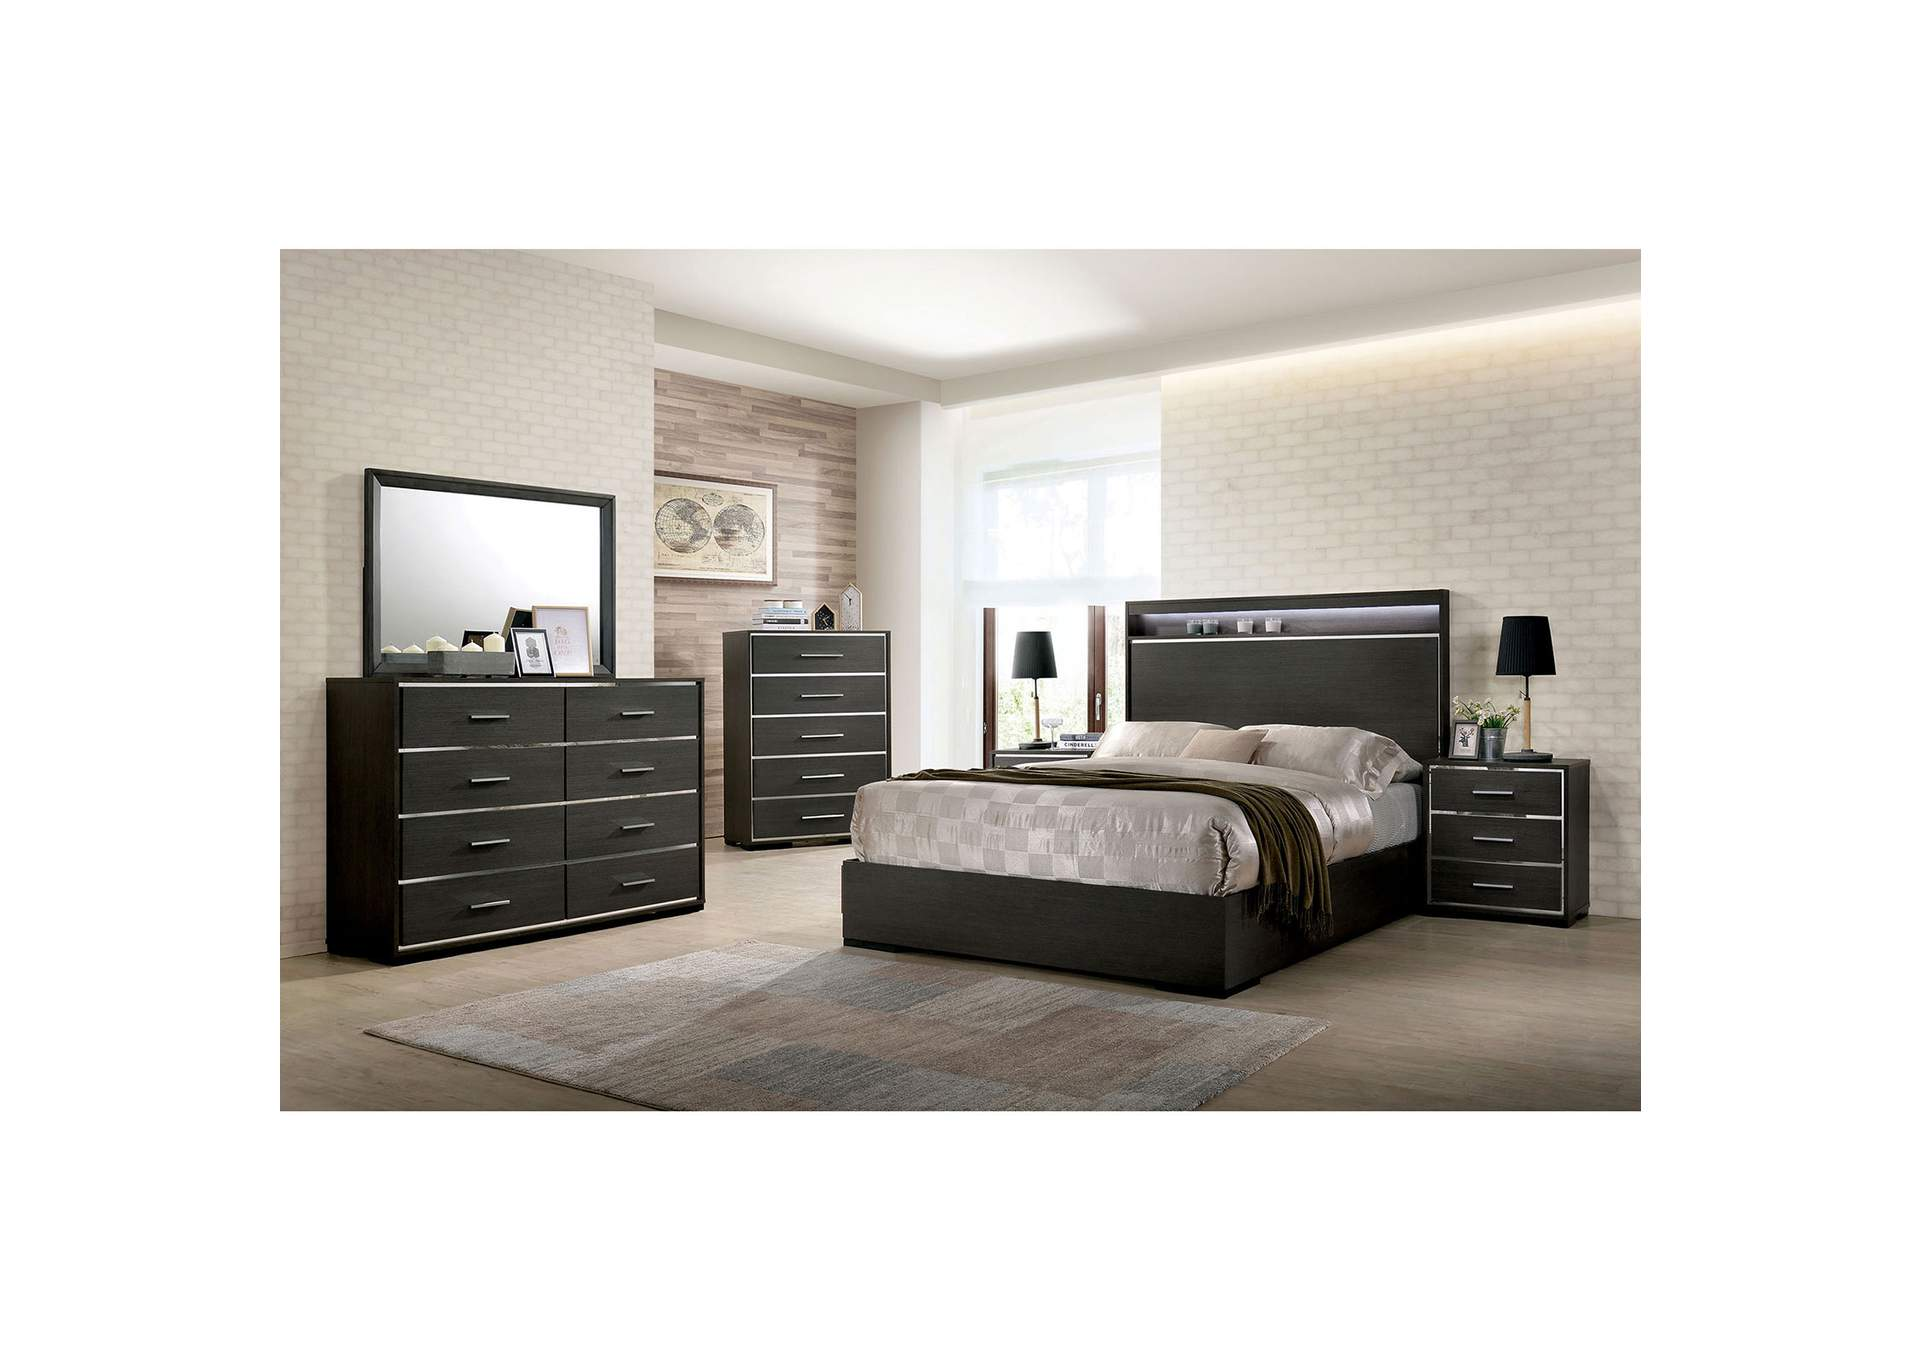 Camryn Warm Gray LED/Chrome Trim Queen Platform Bed w/Dresser and Mirror,Furniture of America